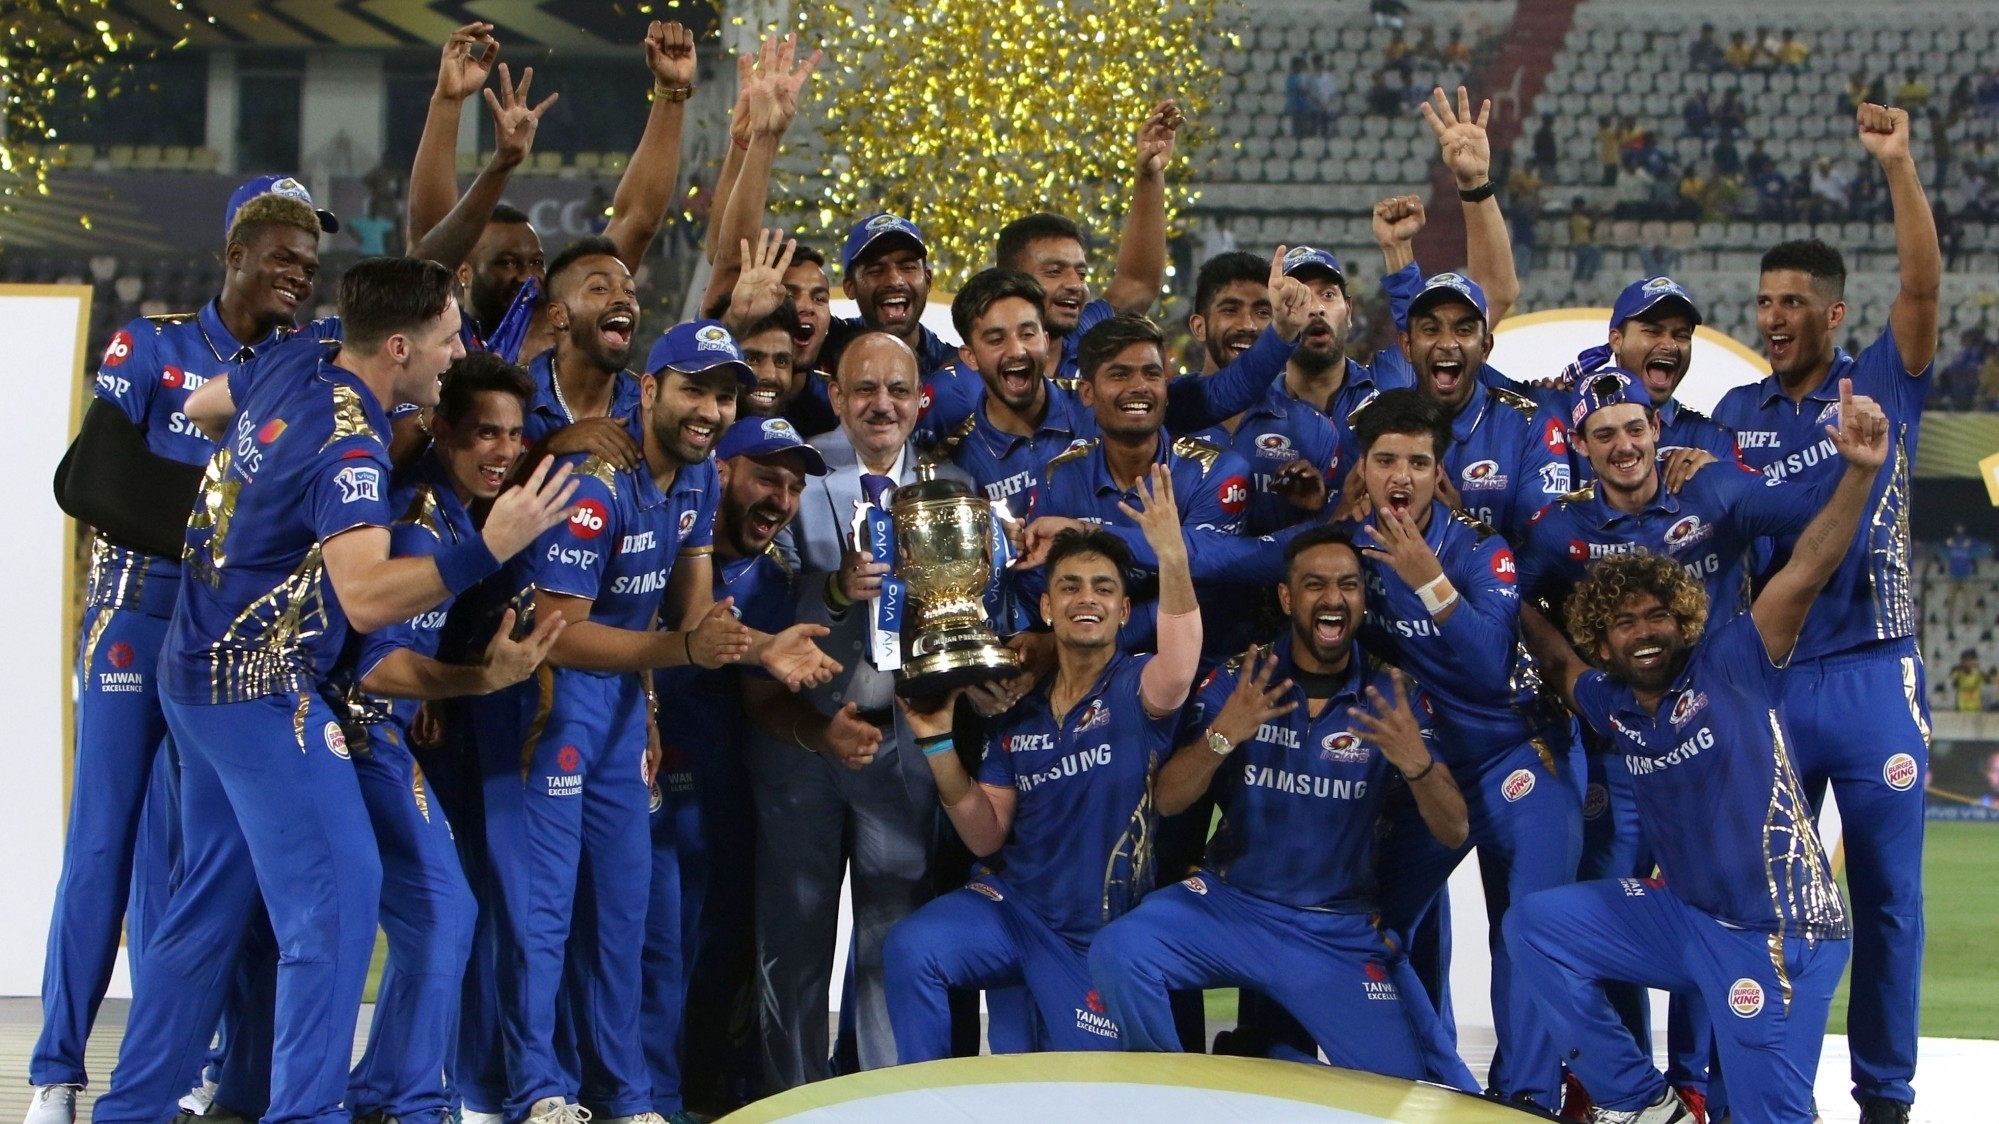 IPL 2019: Final, MI v CSK - Statistical Highlights